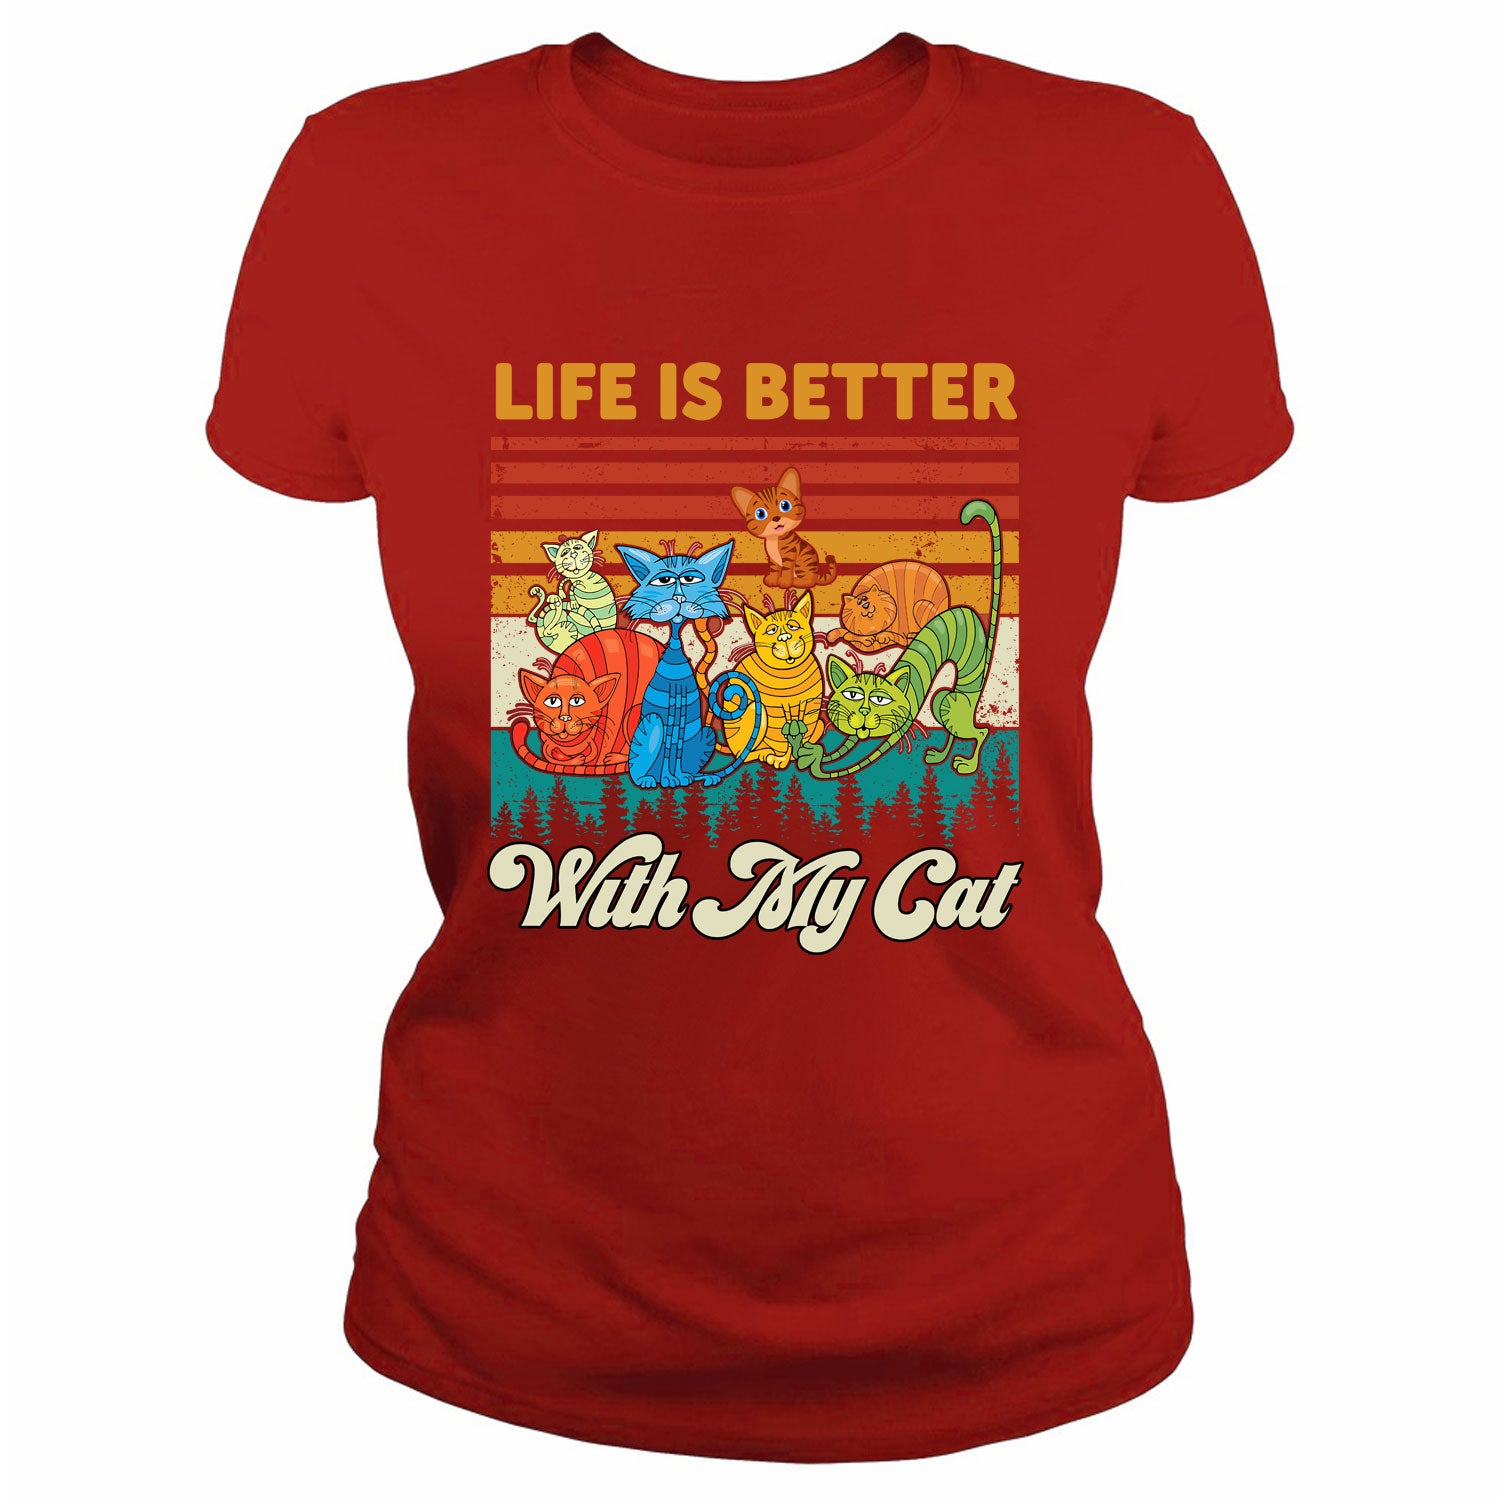 Life is better with my cat